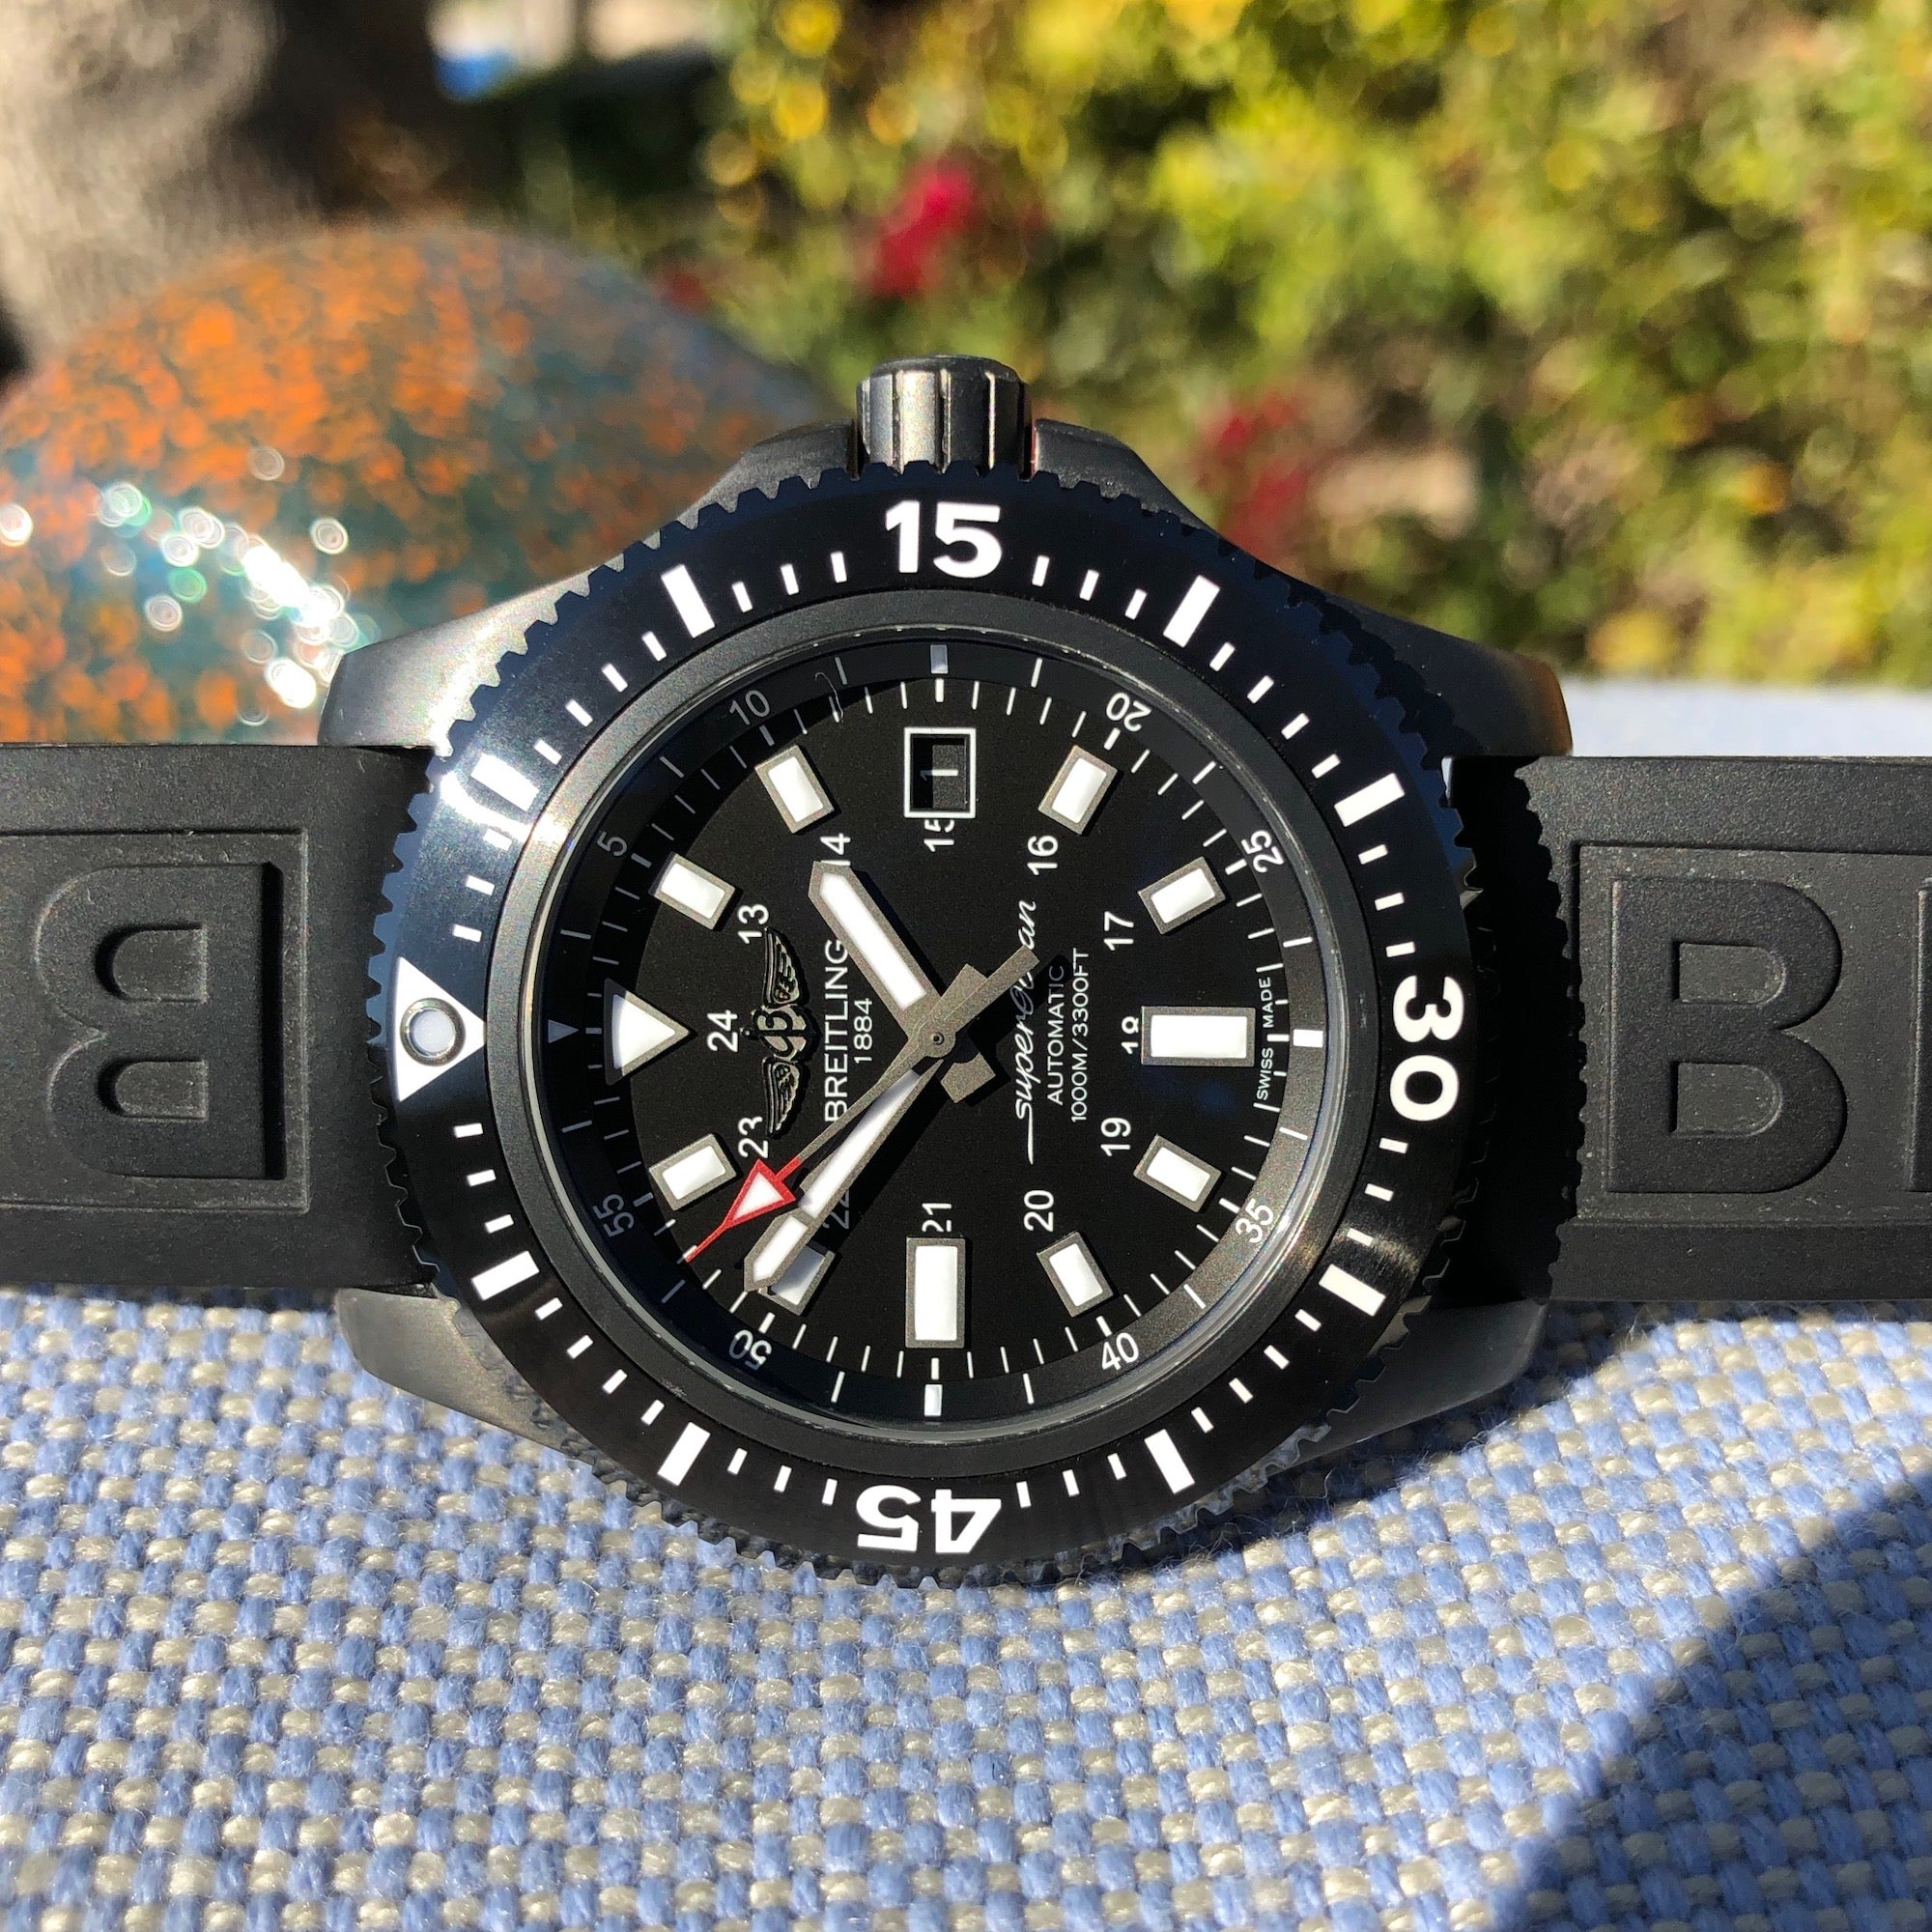 Breitling Superocean 44 Special M1739313 Black Steel Automatic Wristwatch Box Papers - Hashtag Watch Company